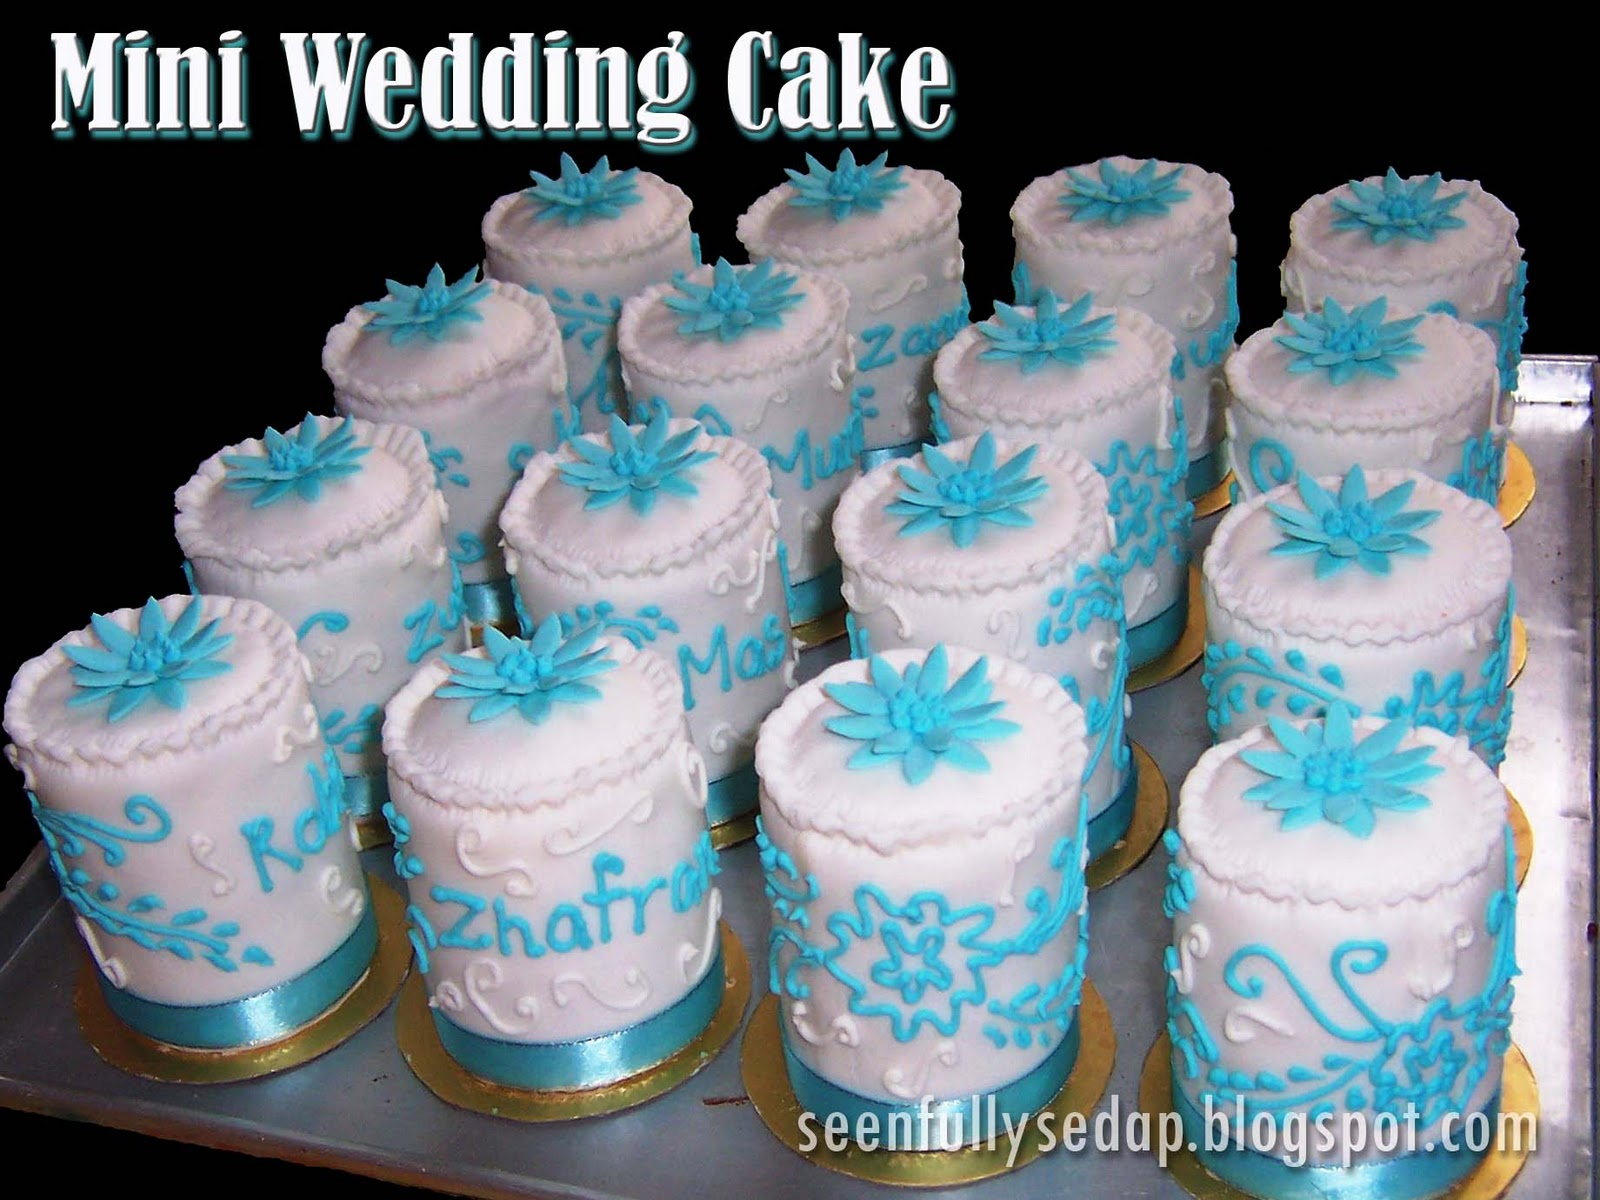 These mini wedding cakes were